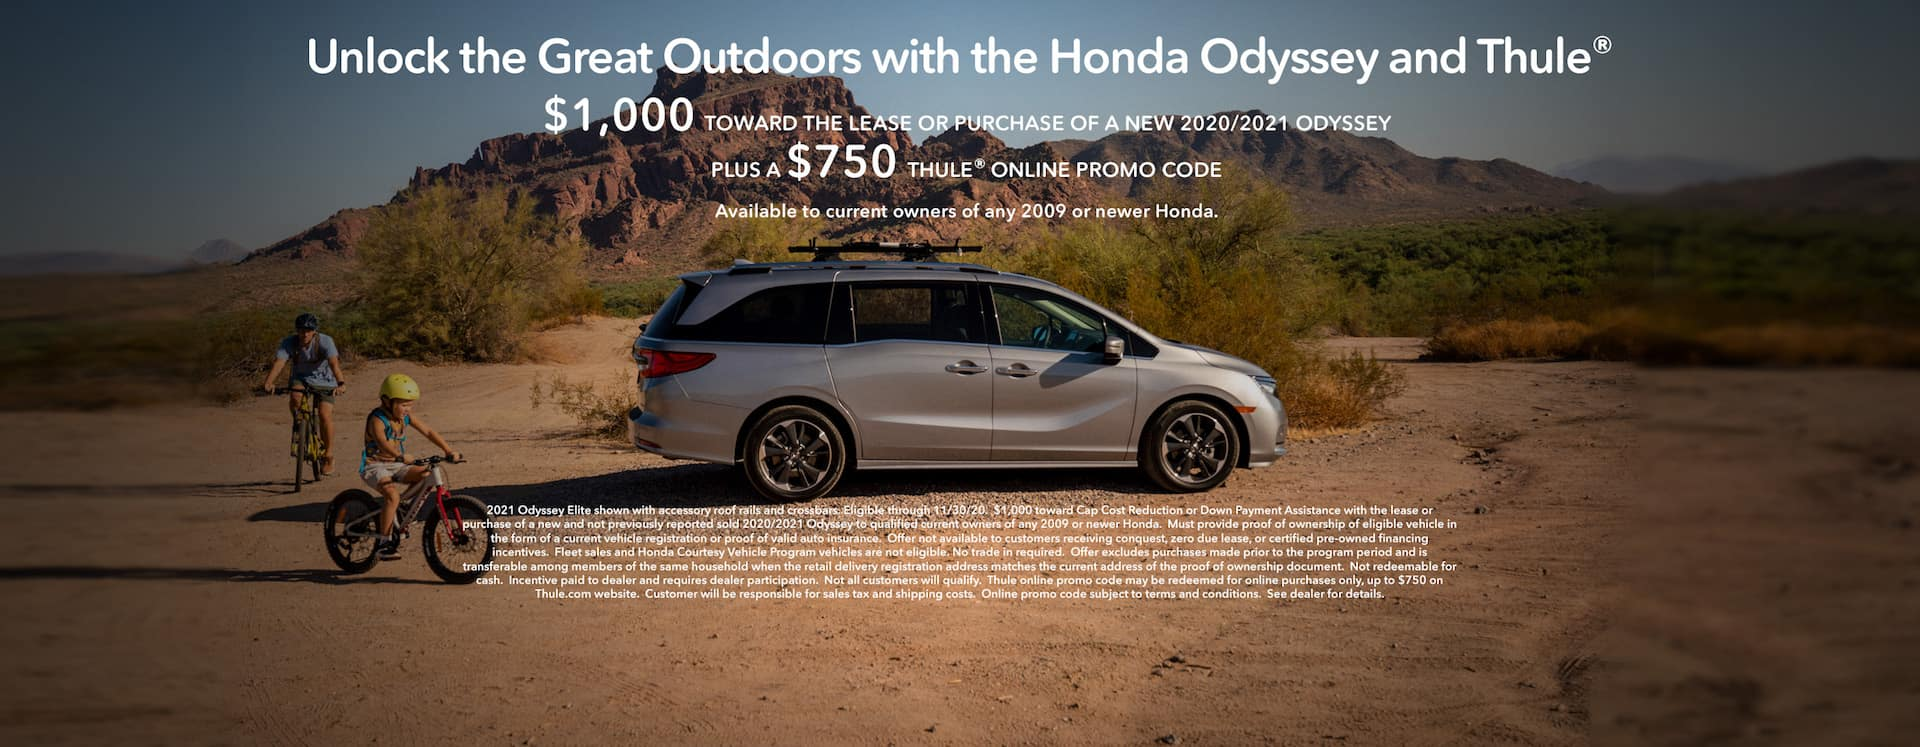 $1,000 towards the lease or purchase of a 2020/2021 Honda Odyssey